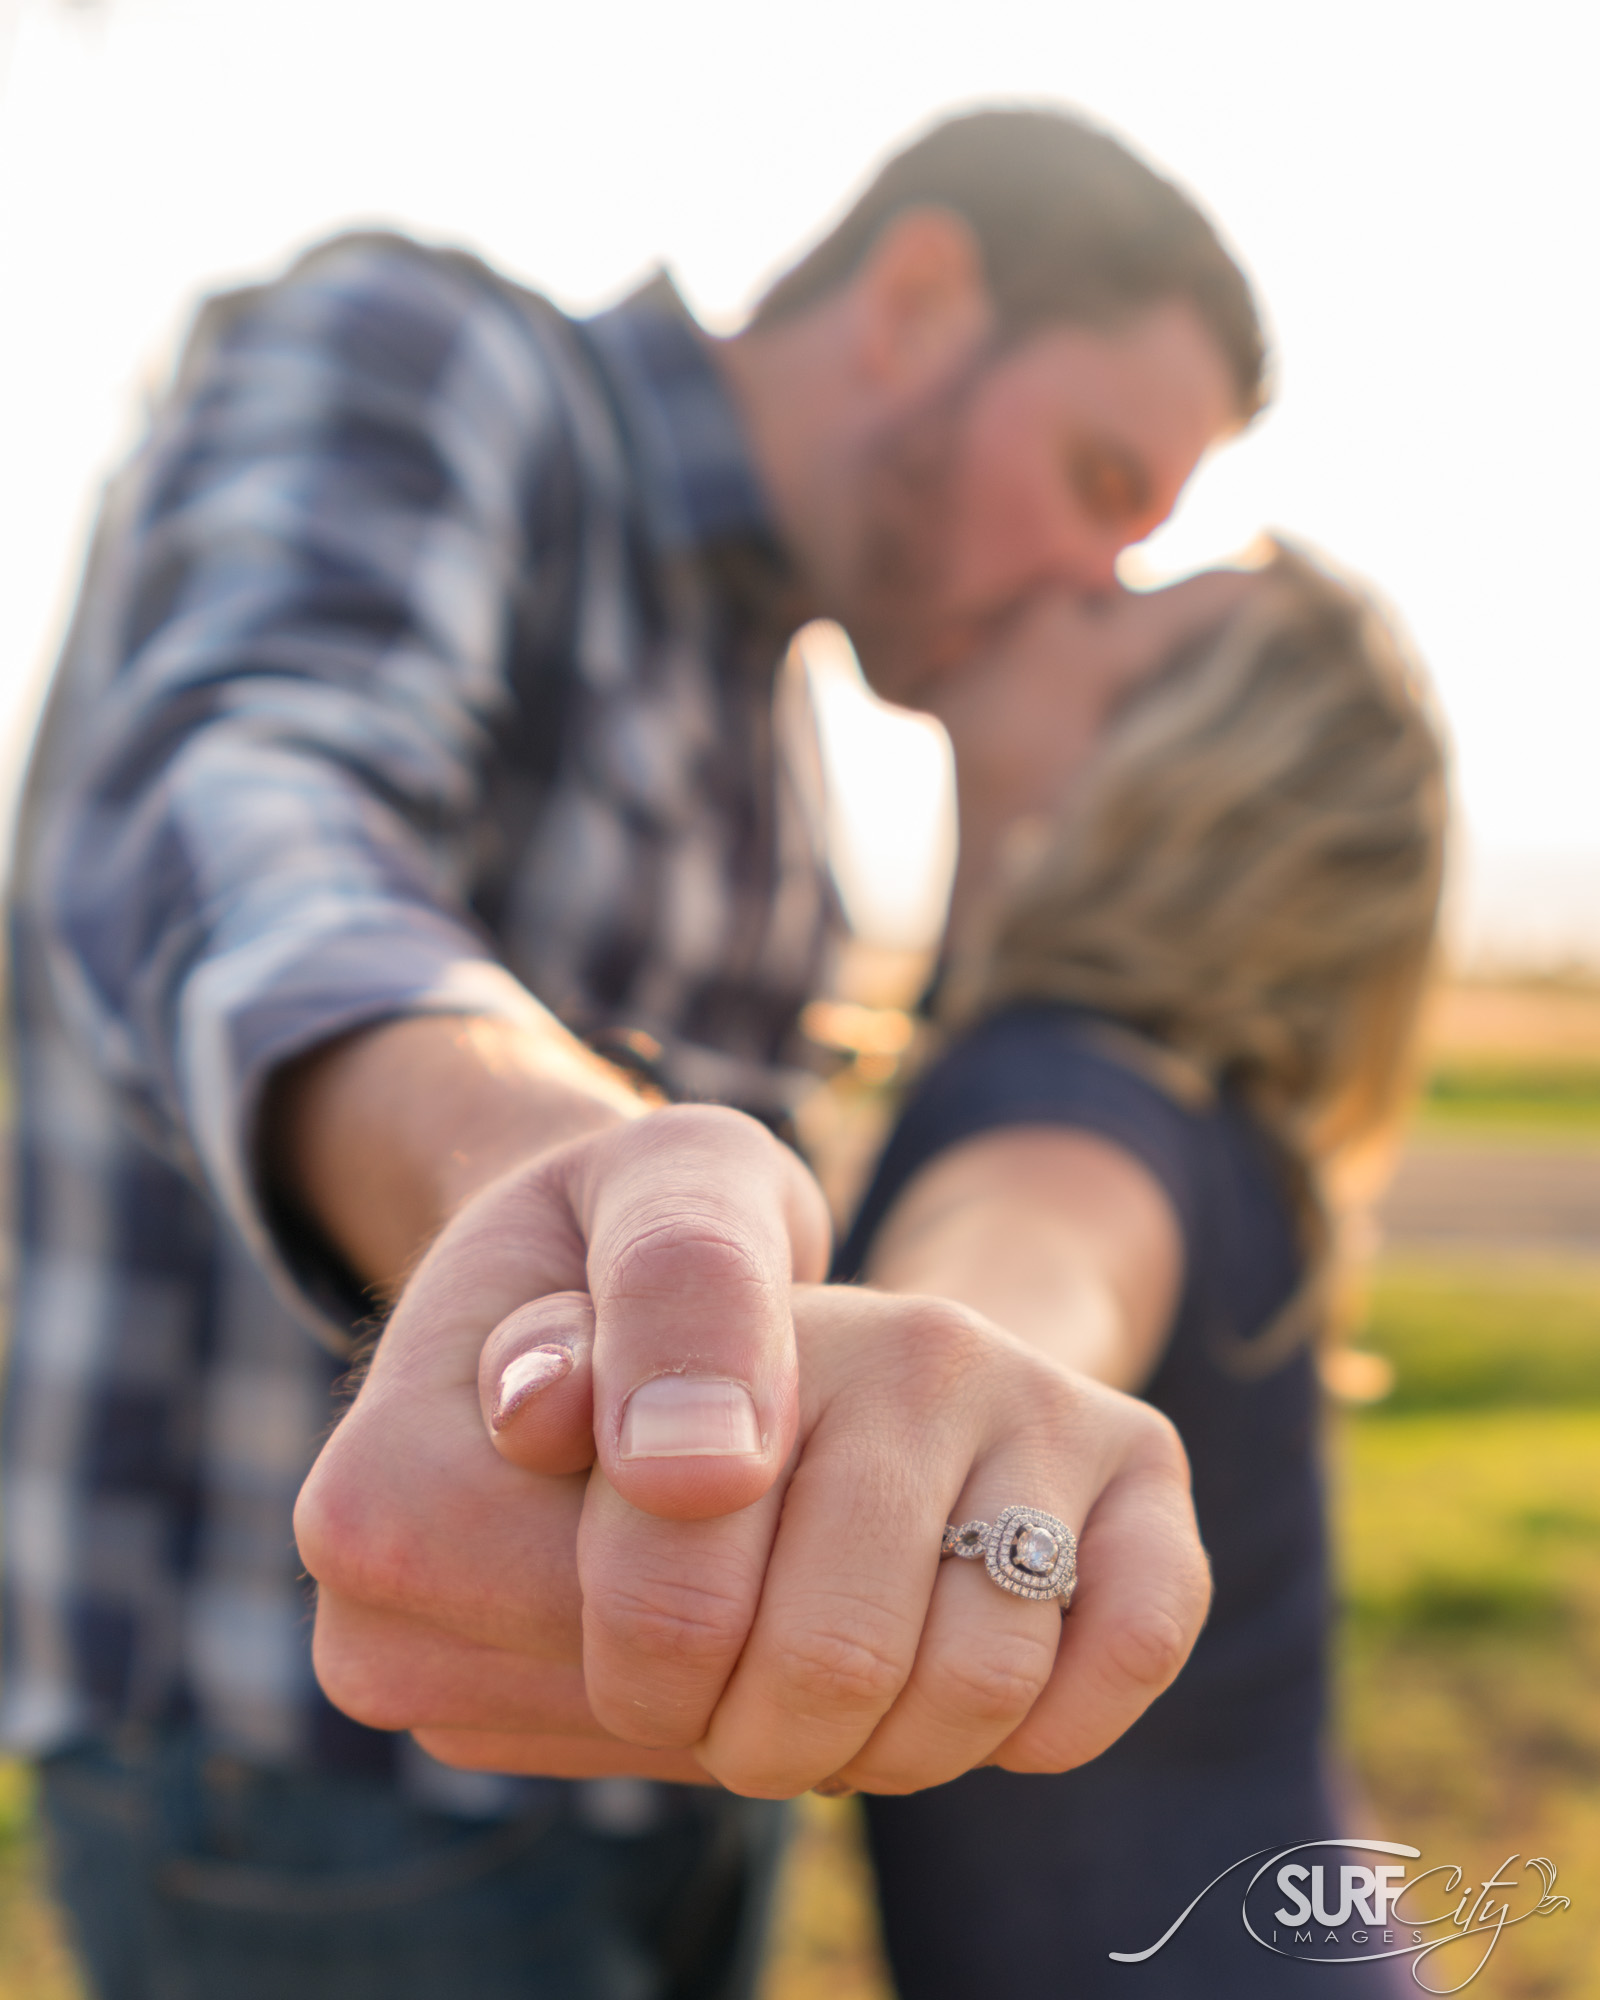 Wedding ring engagement portraits